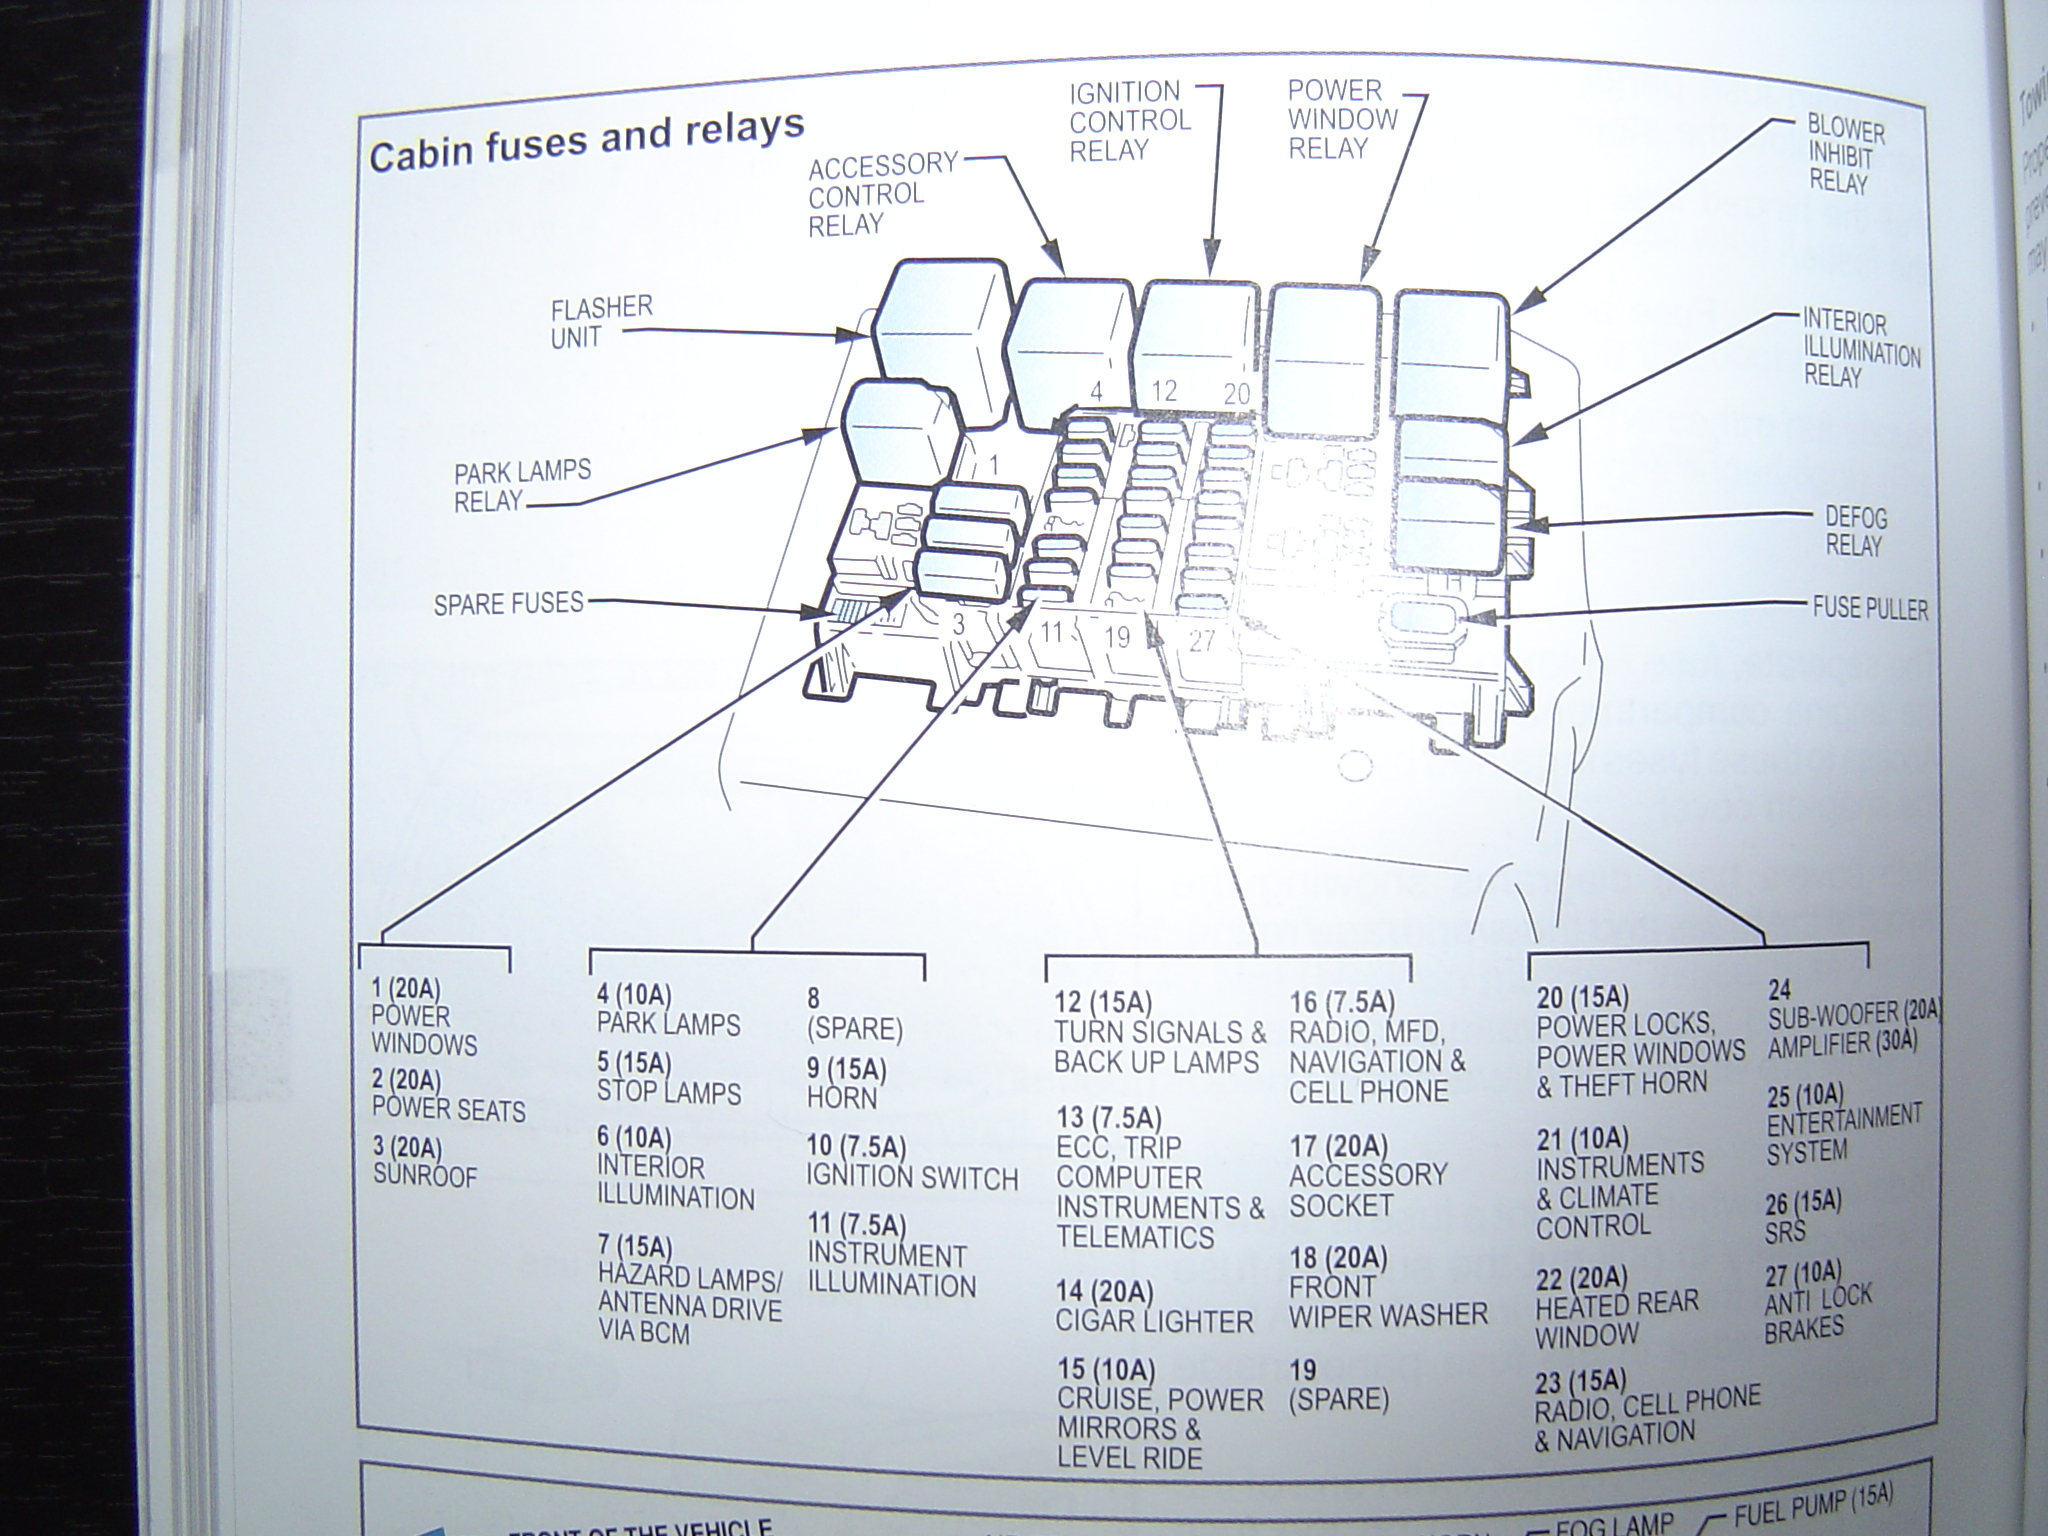 VY_CABIN_FUSEBOX ba fuse box fuse electrical circuit \u2022 wiring diagrams j squared co au falcon fuse box diagram at mifinder.co